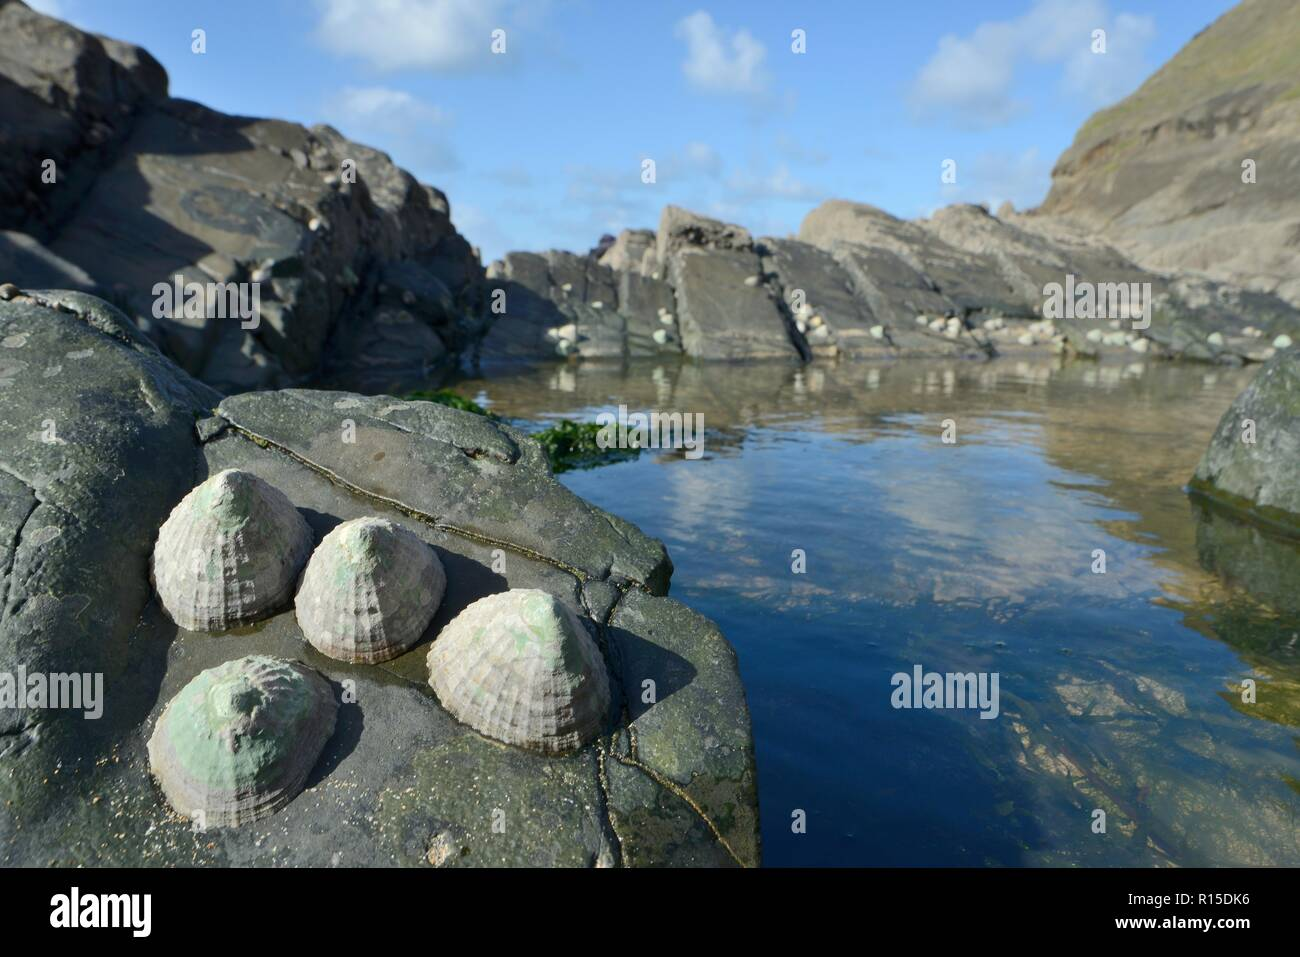 Common limpets (Patella vulgata) attached to rocks fringing a rock pool exposed at low tide, Duckpool Beach, Cornwall, UK, September. - Stock Image